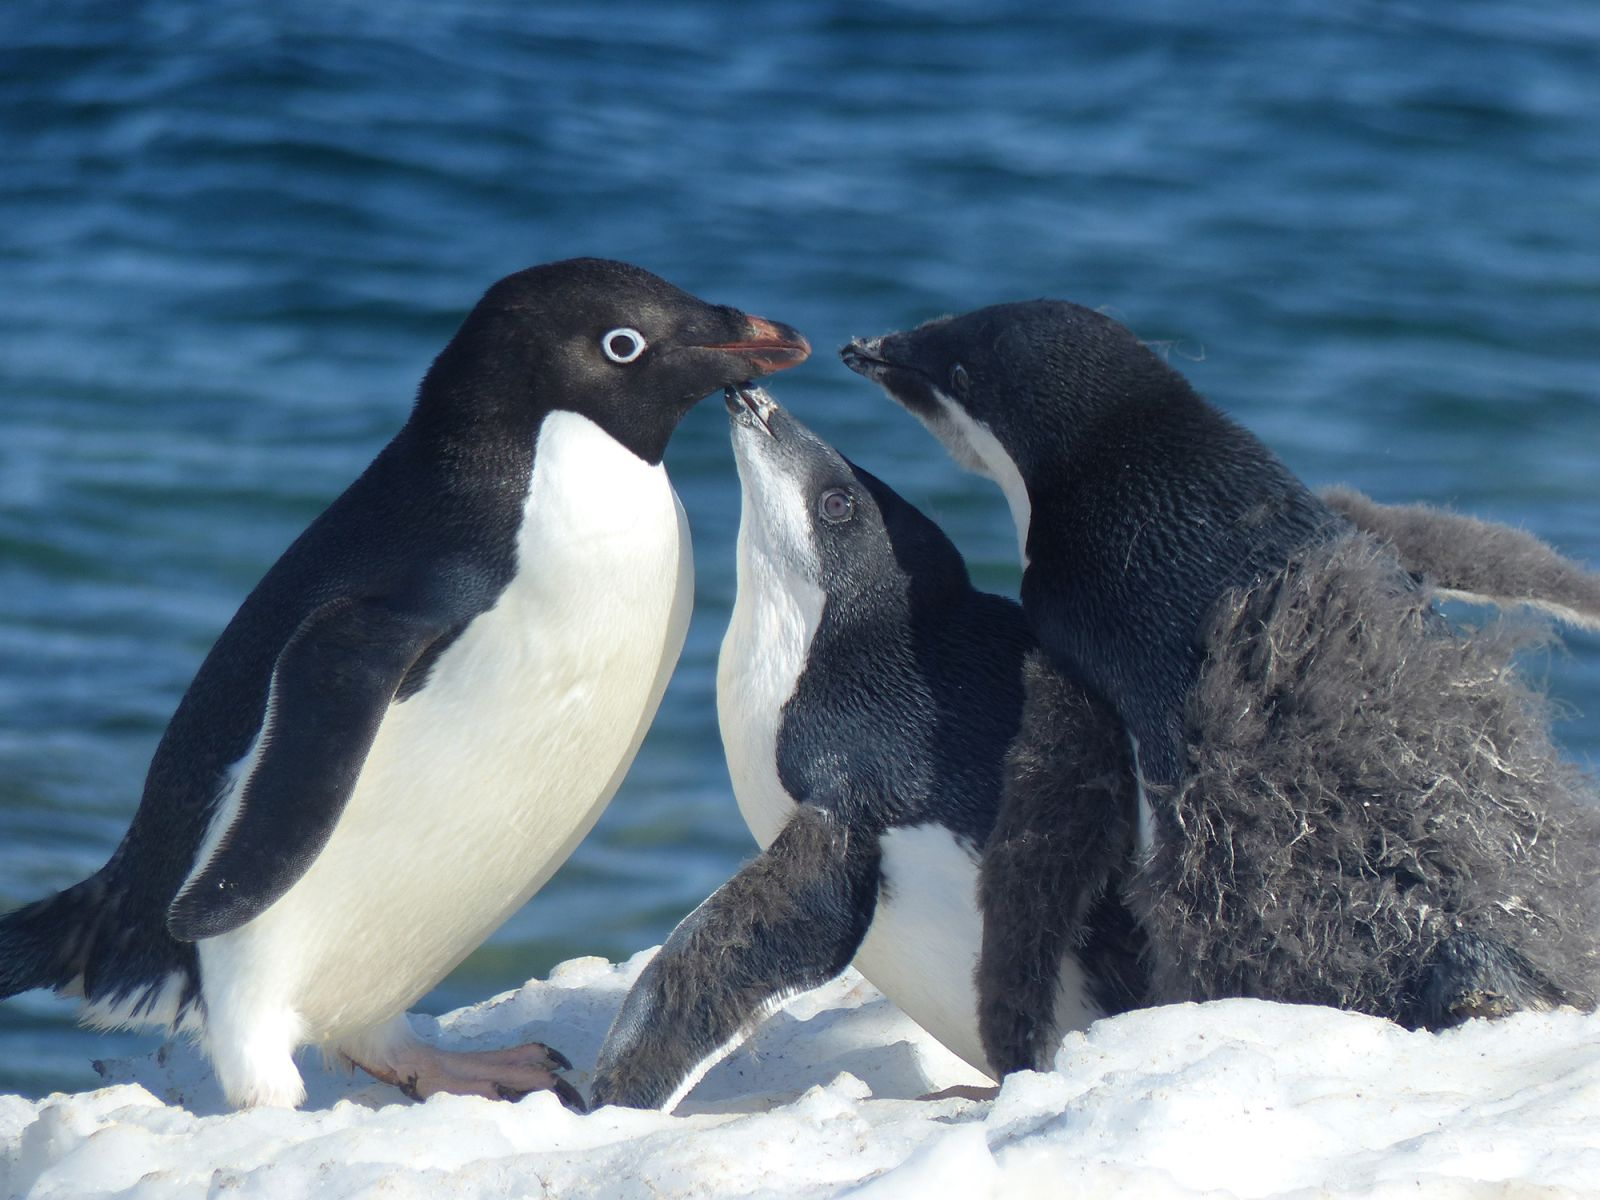 An adult Adélie penguin feeds two young penguins, whose fluffy down has only partially been replaced by adult feathers.